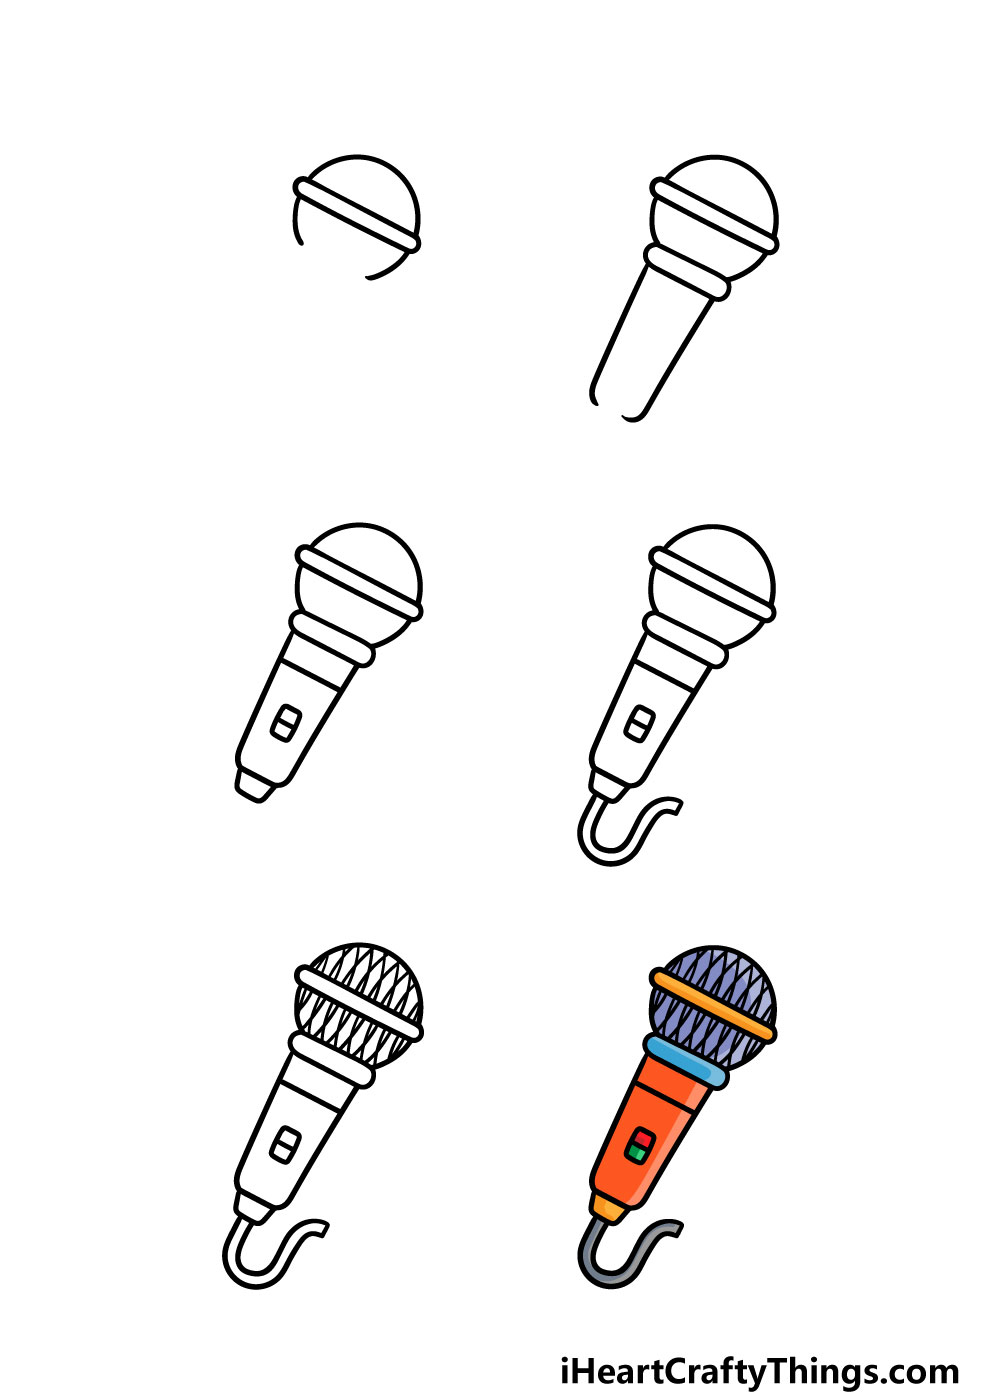 how to draw a microphone in 6 steps